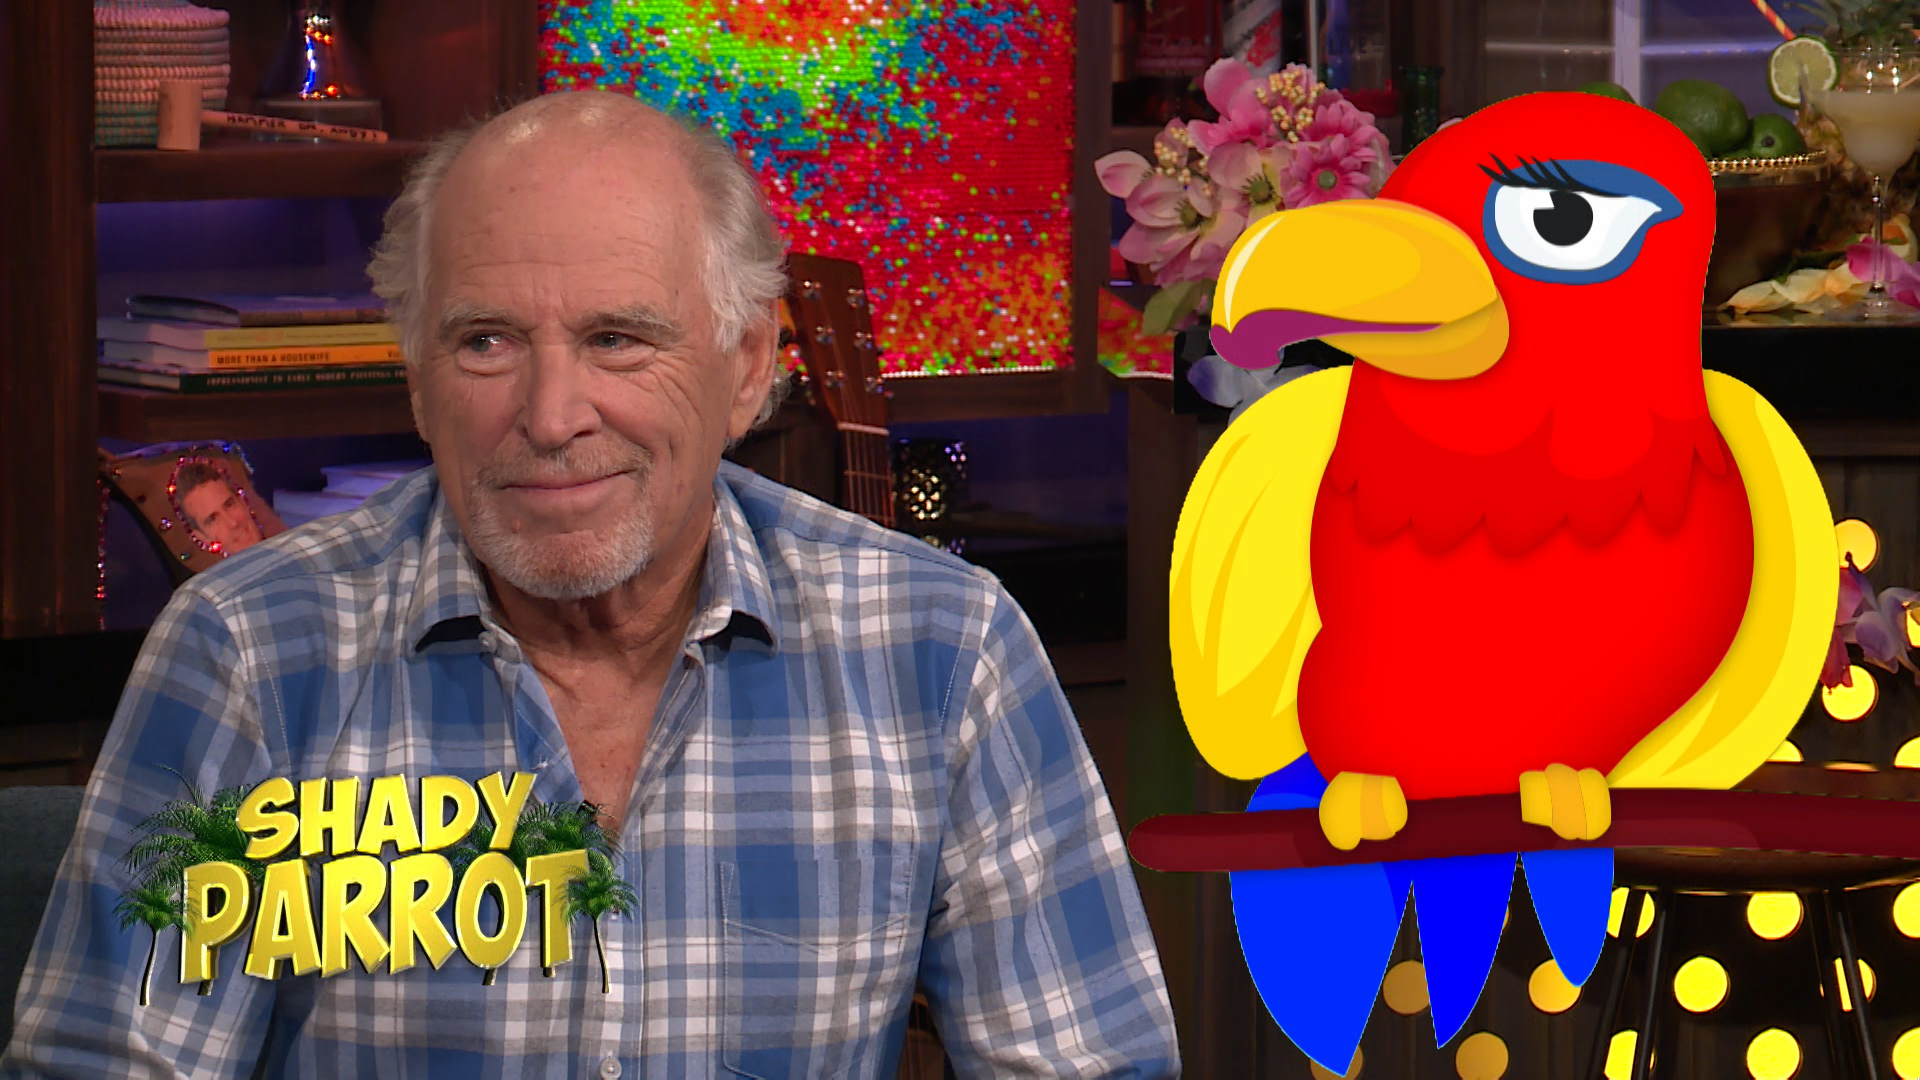 Jimmy Buffett Takes On the Shady Parrot